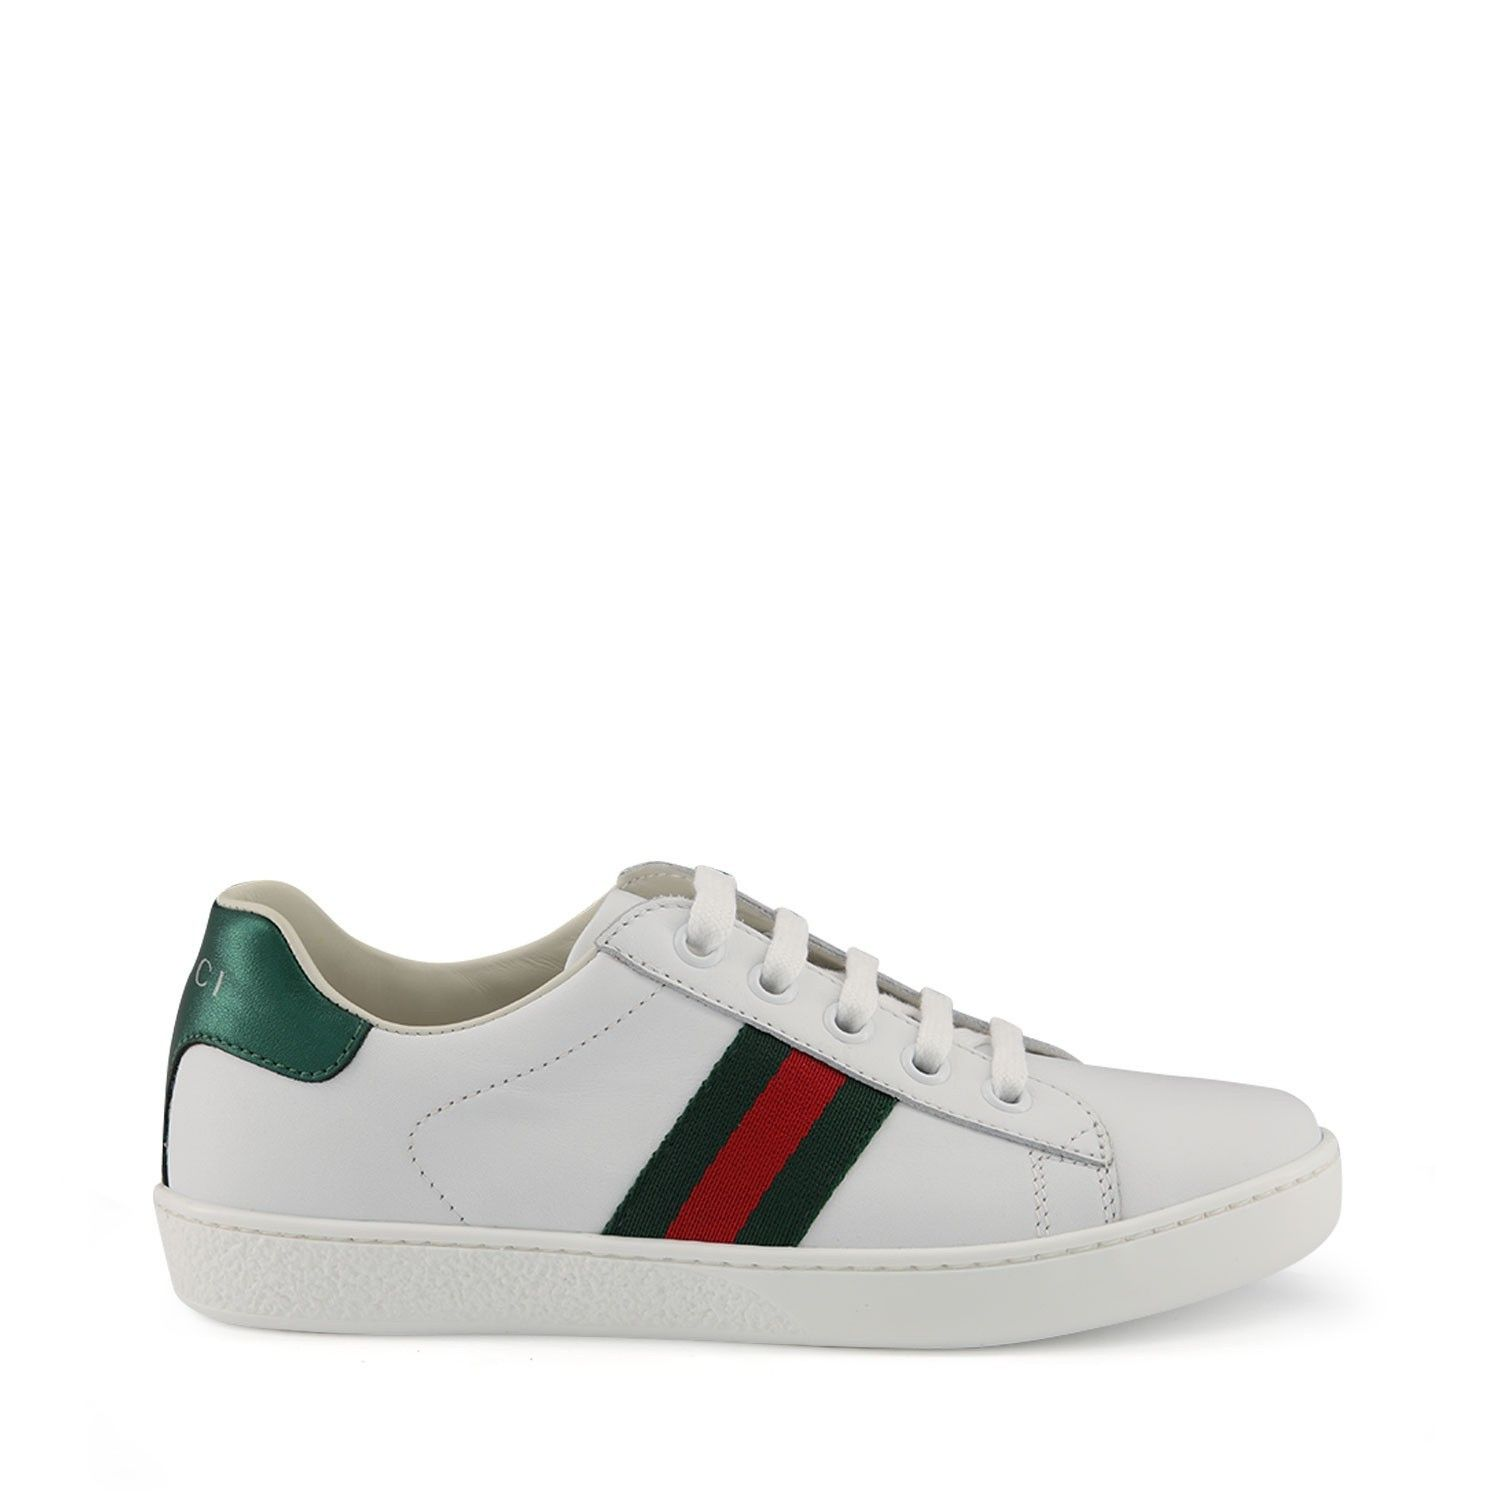 Picture of Gucci 433146 kids sneakers white